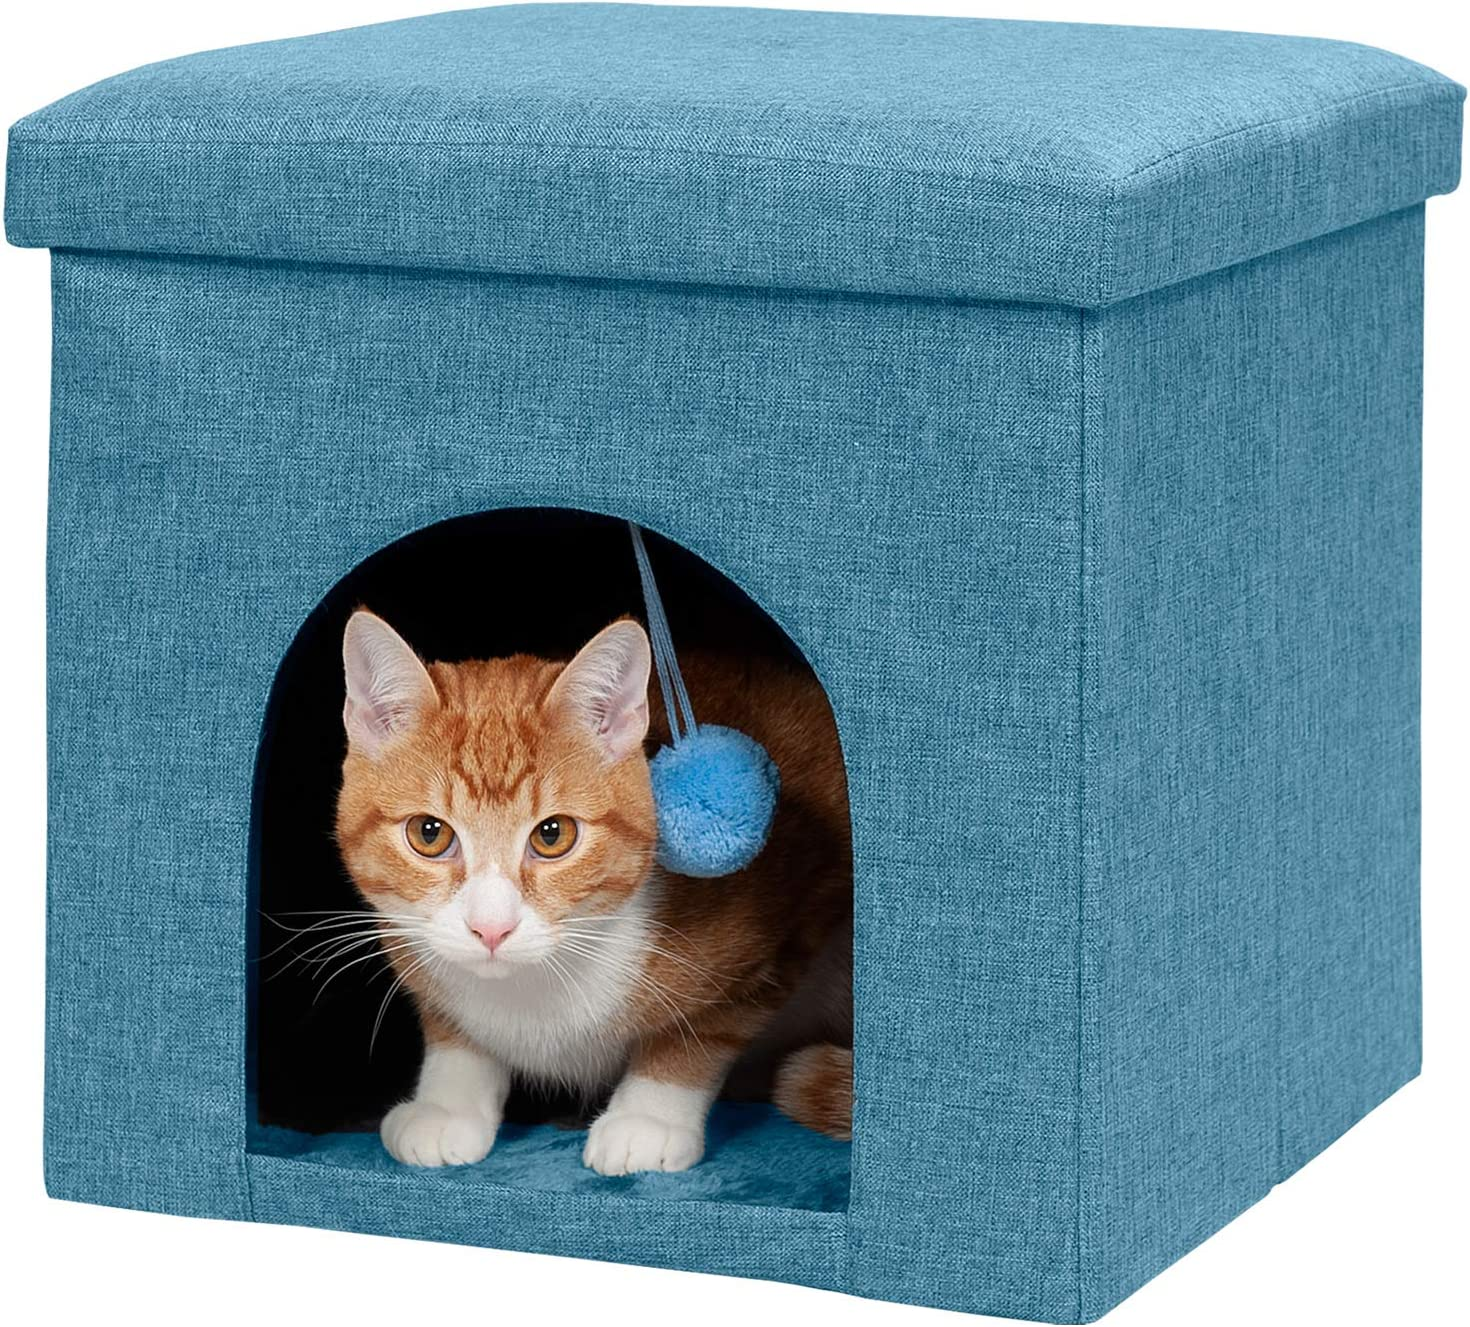 Furhaven Pet House for Cats and Today's only Living Dogs Super special price - Collapsible Small